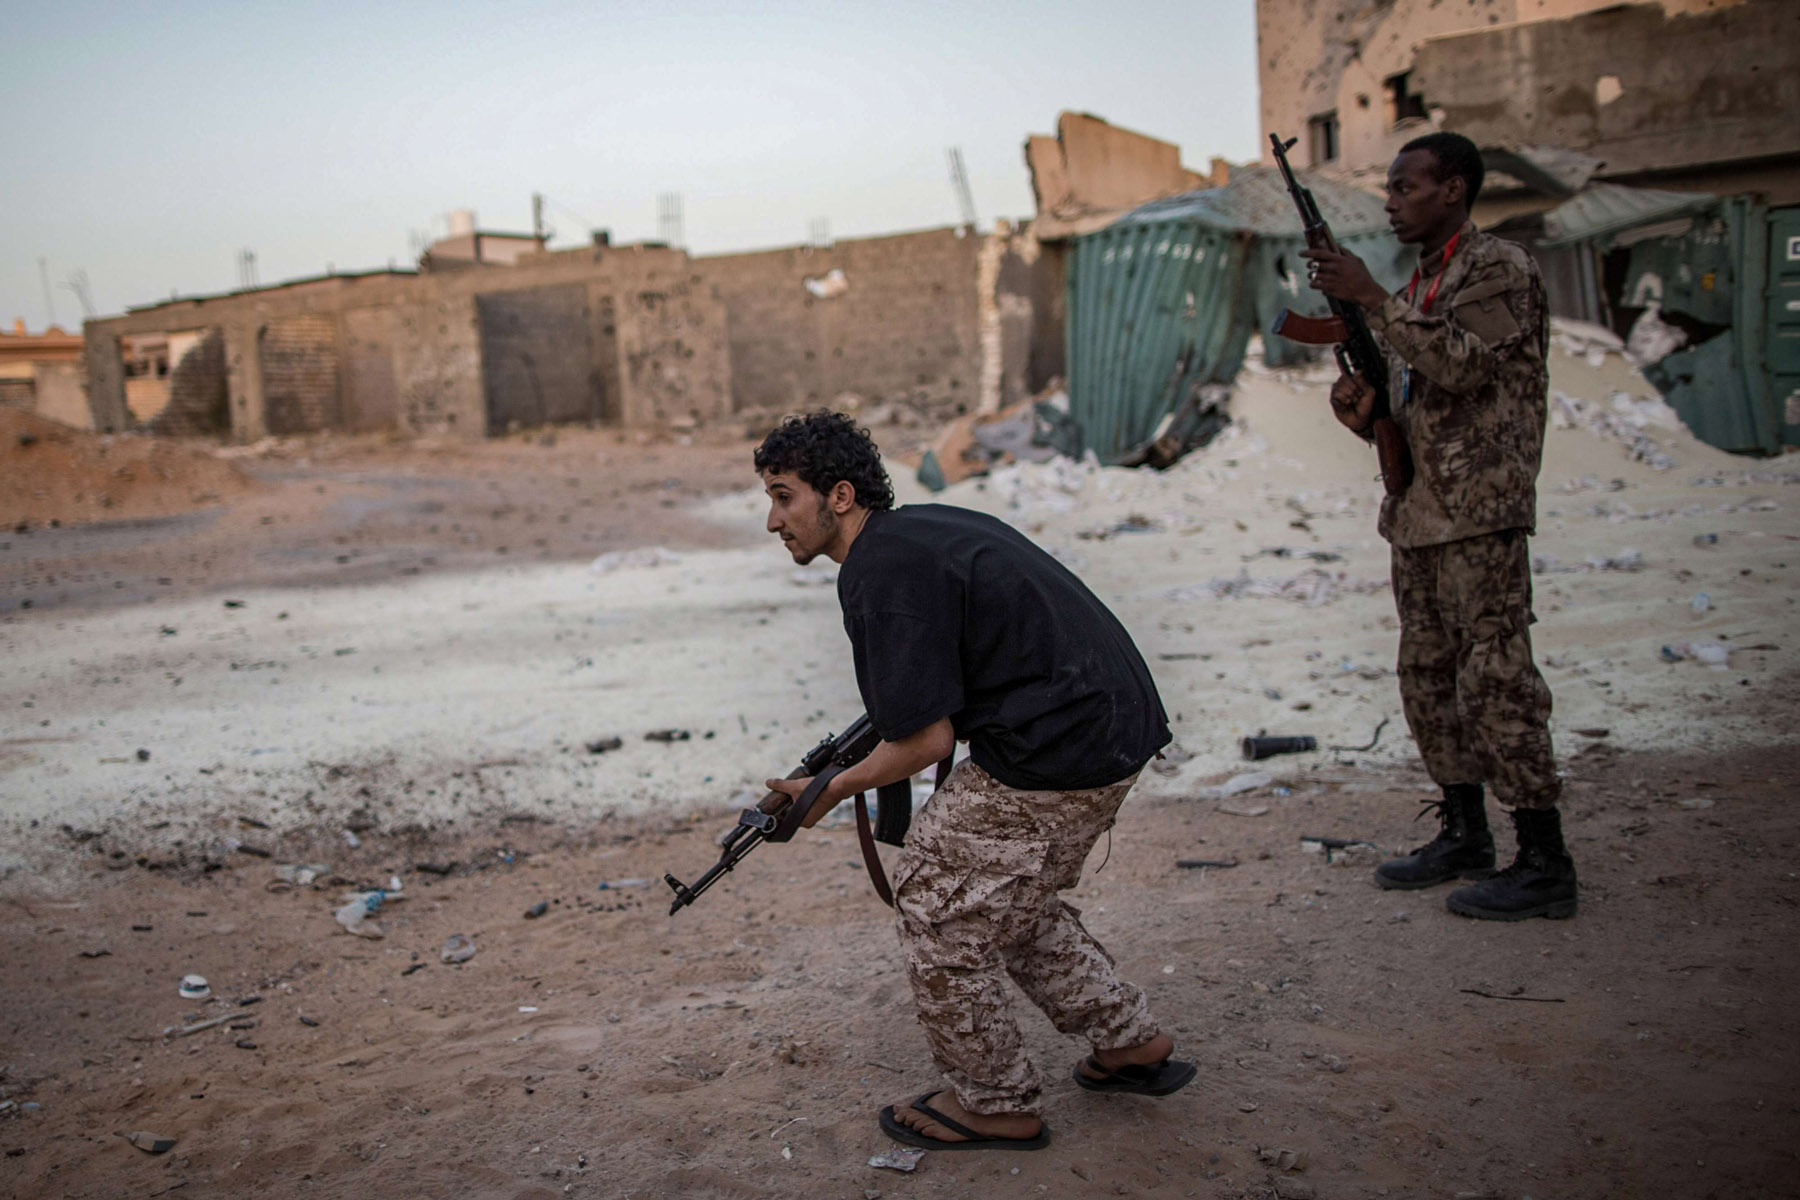 Fighters of Libya's UN-backed Government of National Accord of Fayez al-Sarraj take their position during clashes with LNA forces in Tripoli. (DPA)